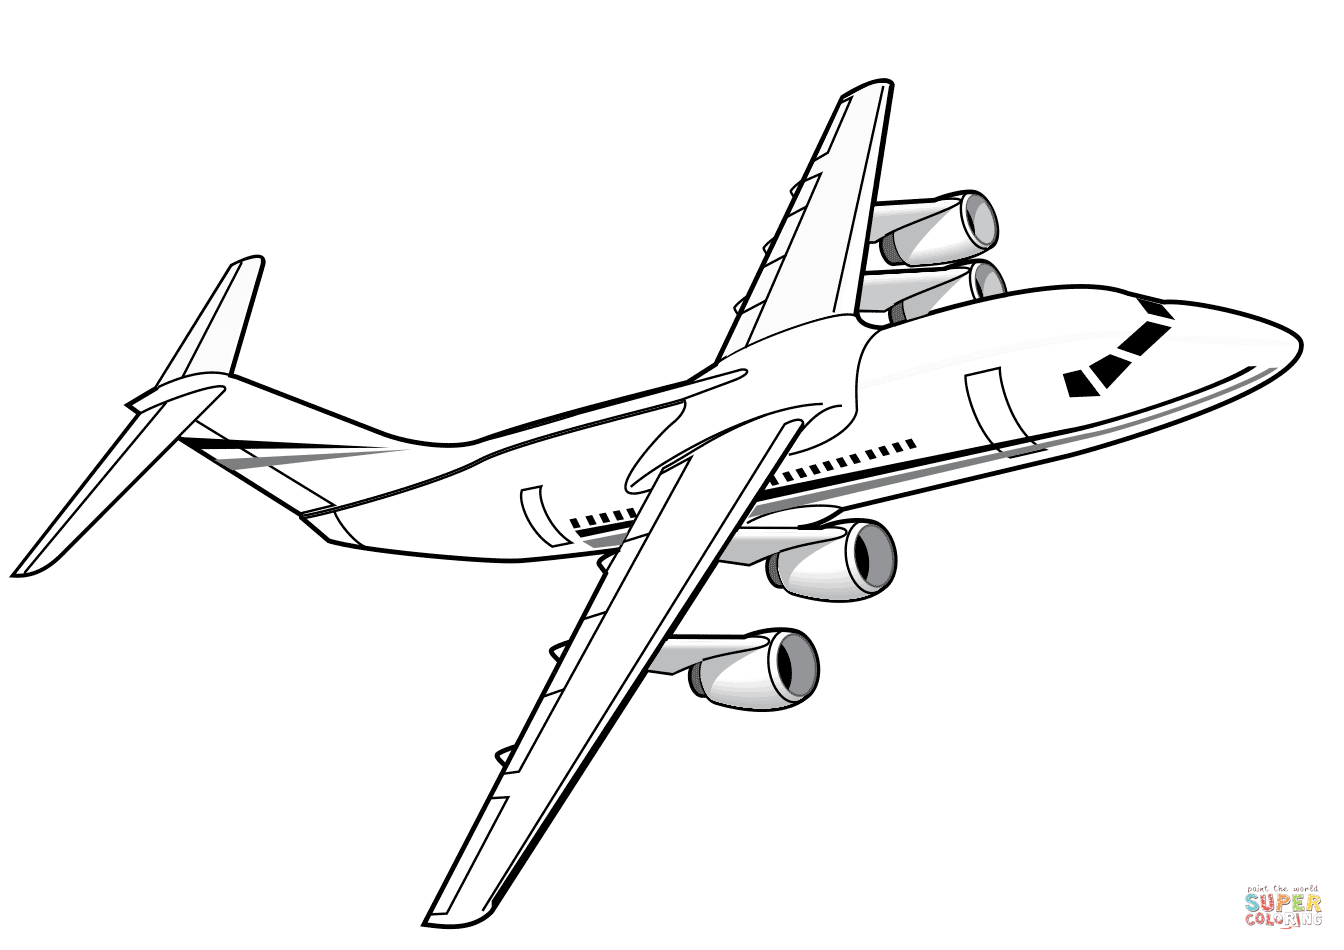 airbus a380 coloring pages airbus a380 coloring pages sketch coloring page pages coloring airbus a380